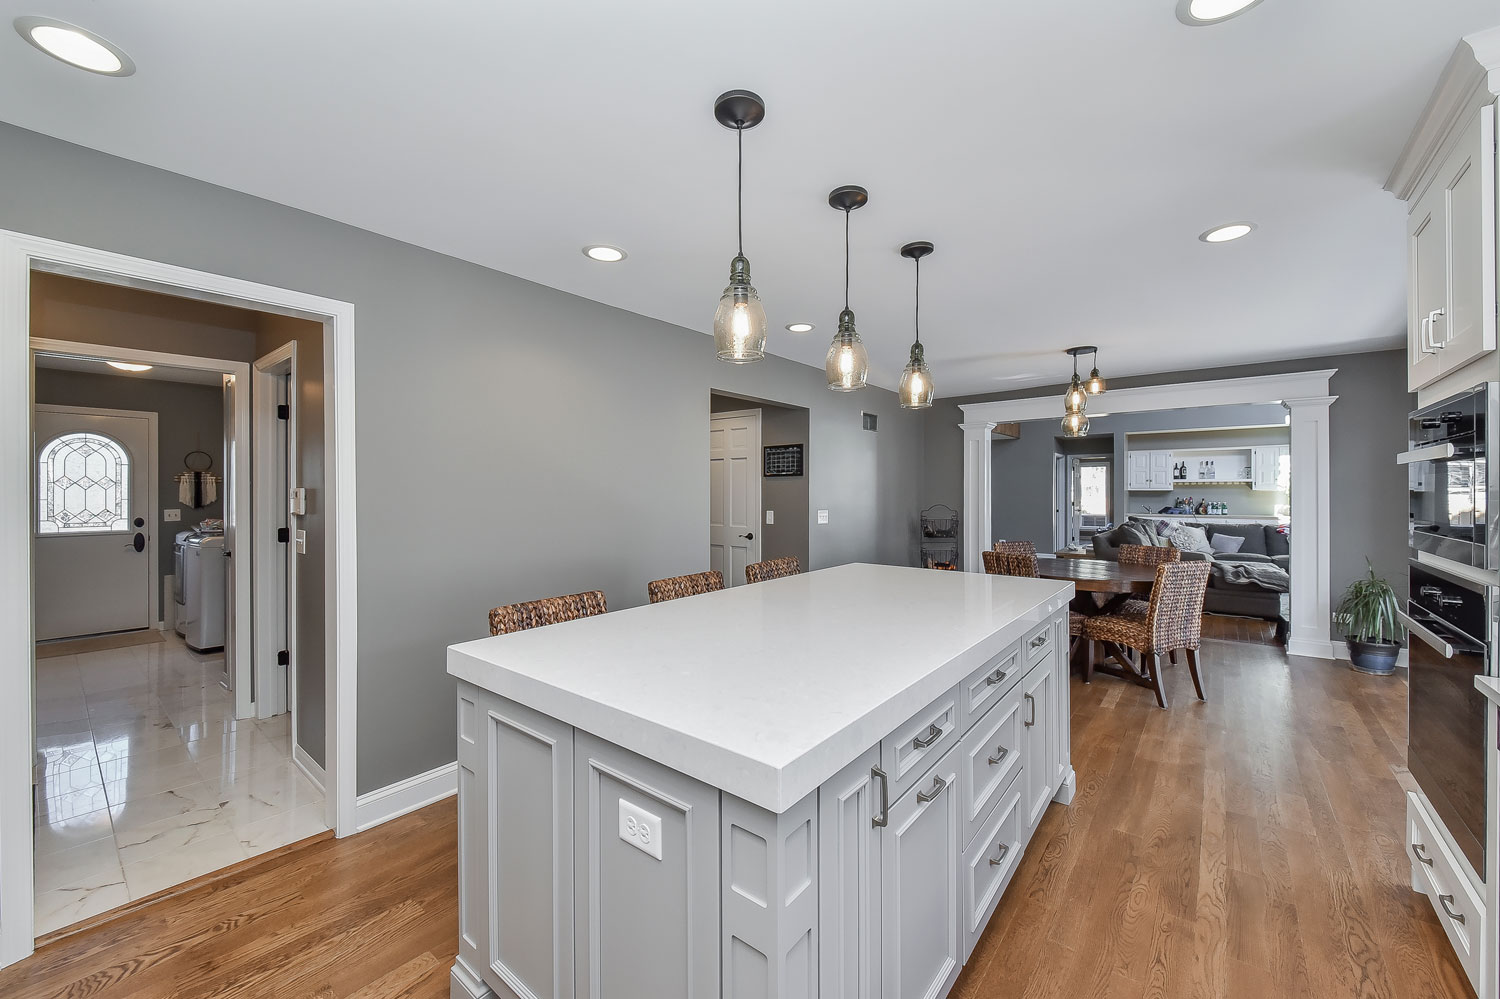 Naperville Kitchen Remodel Pictures - Sebring Design Build